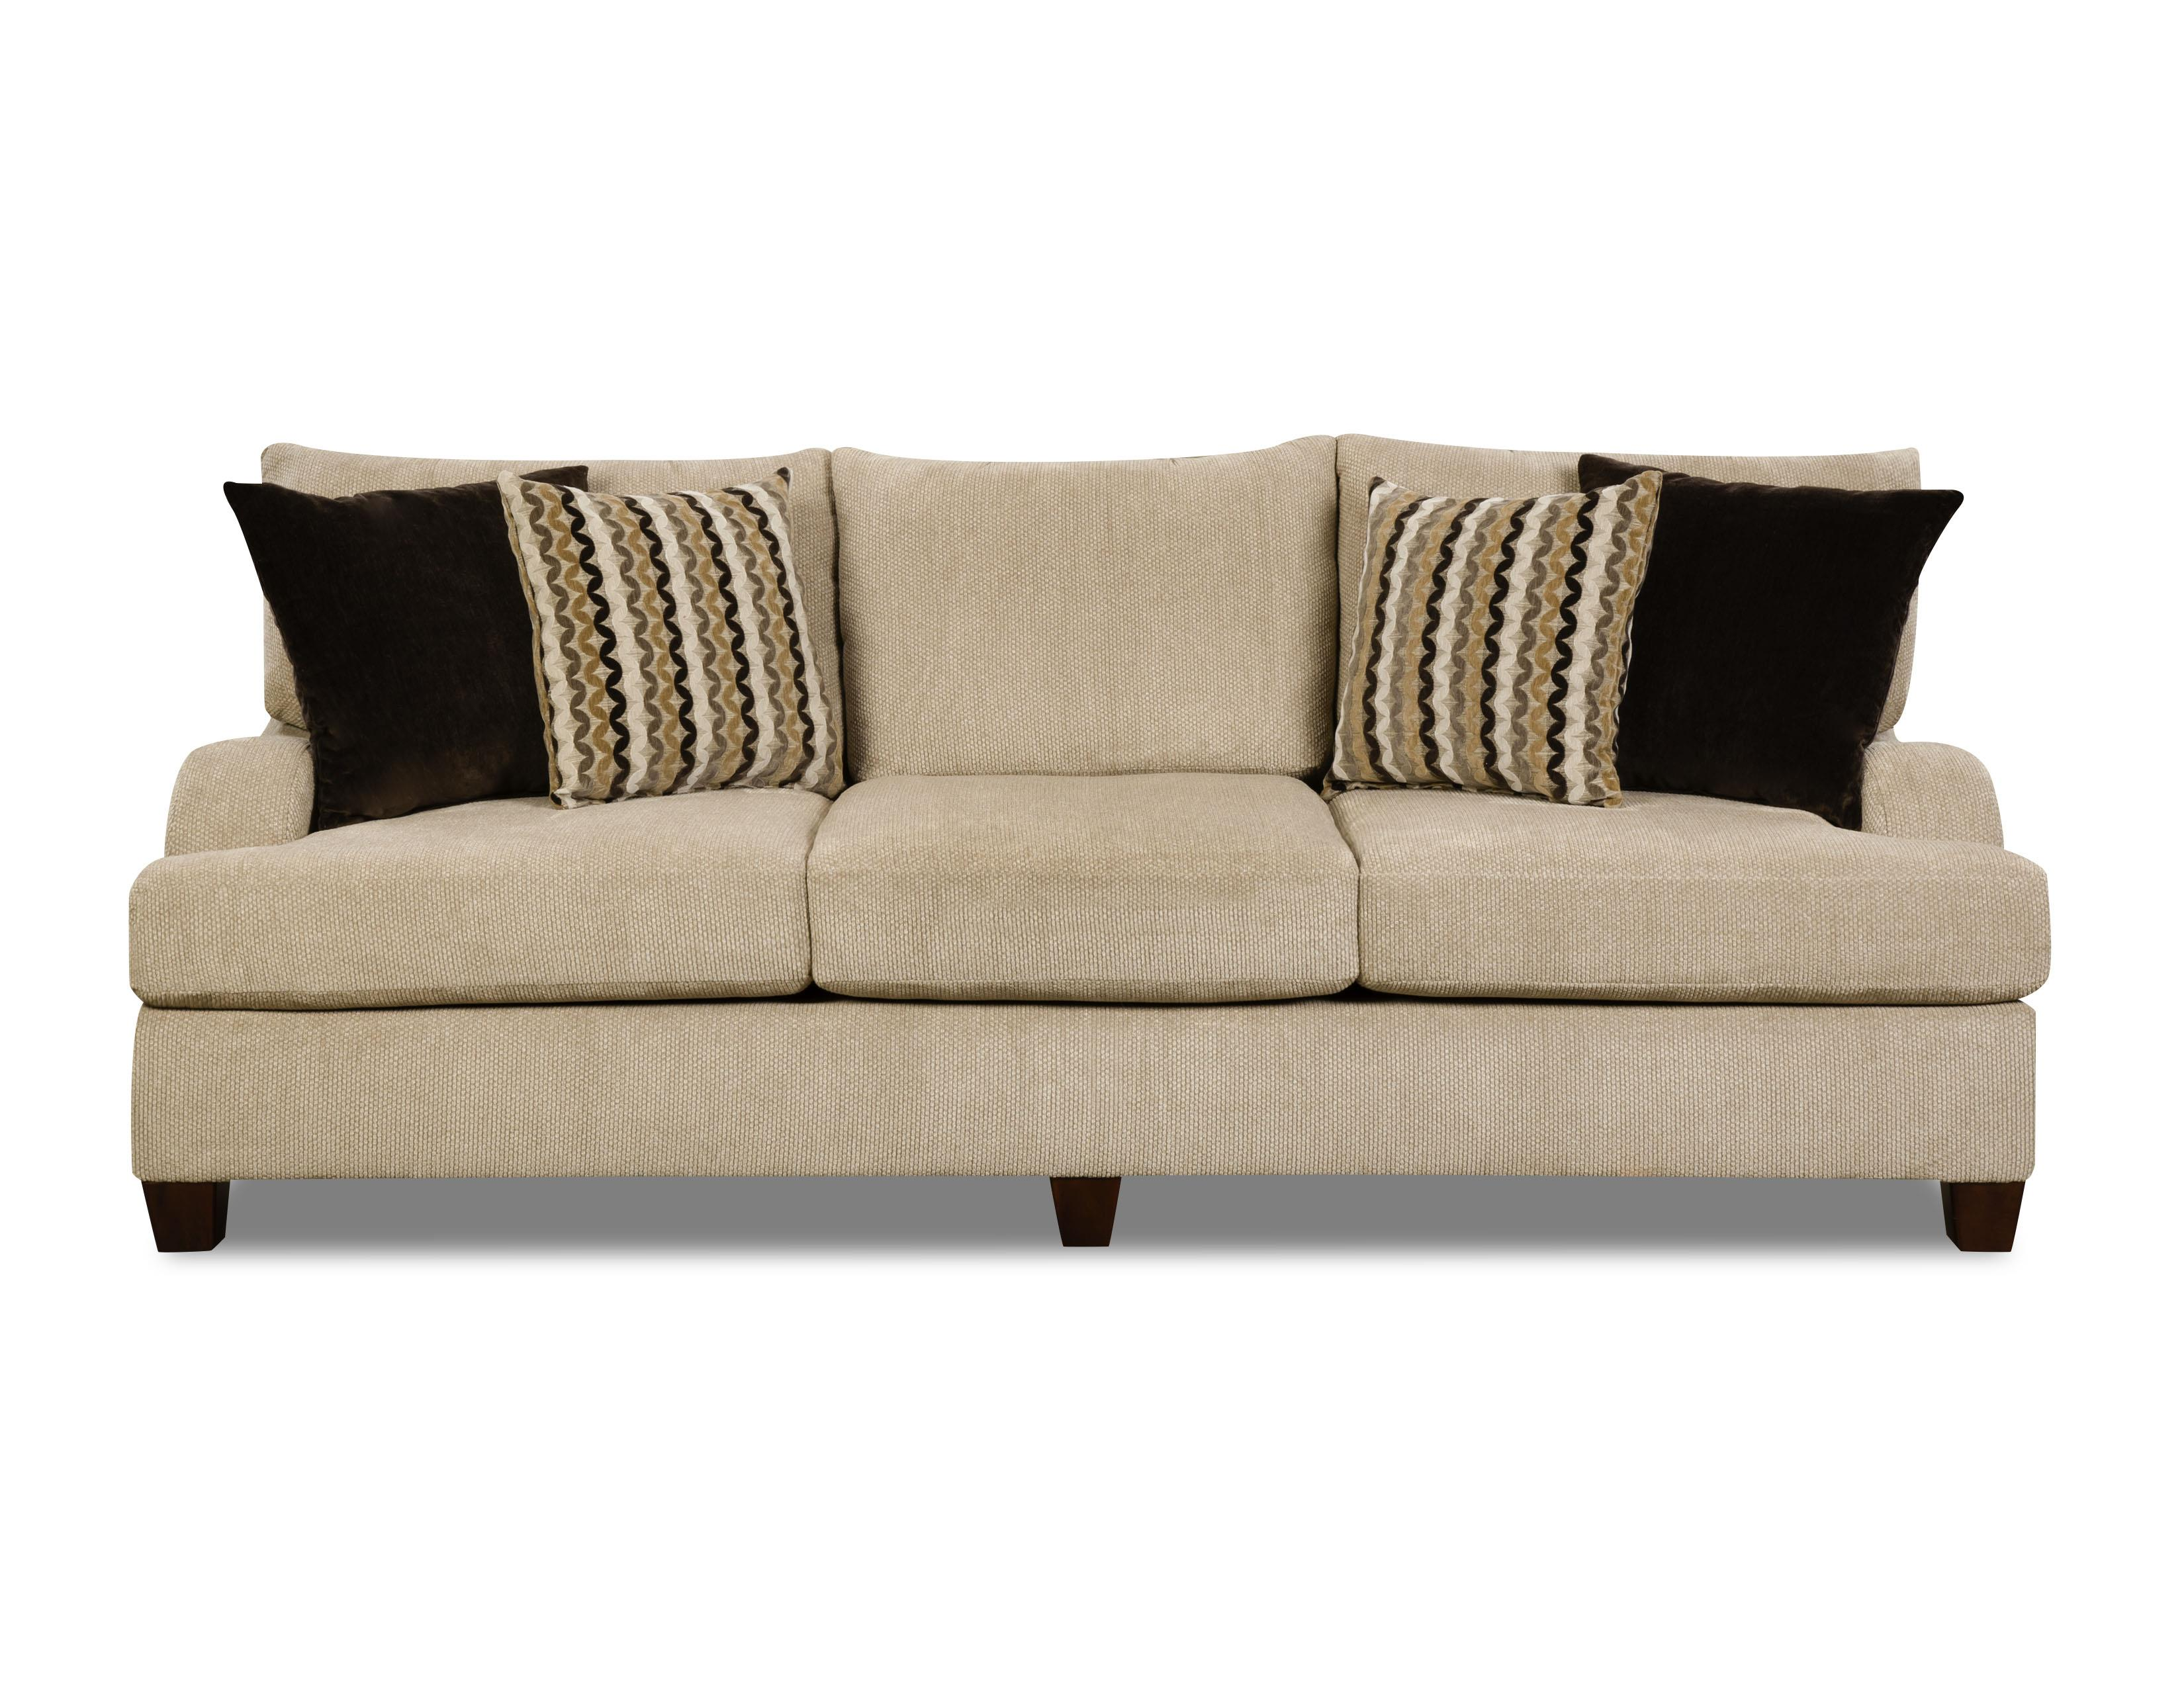 Simmons Upholstery 8520 Sofa - Item Number: 8520Sofa-TrinidadTaupe